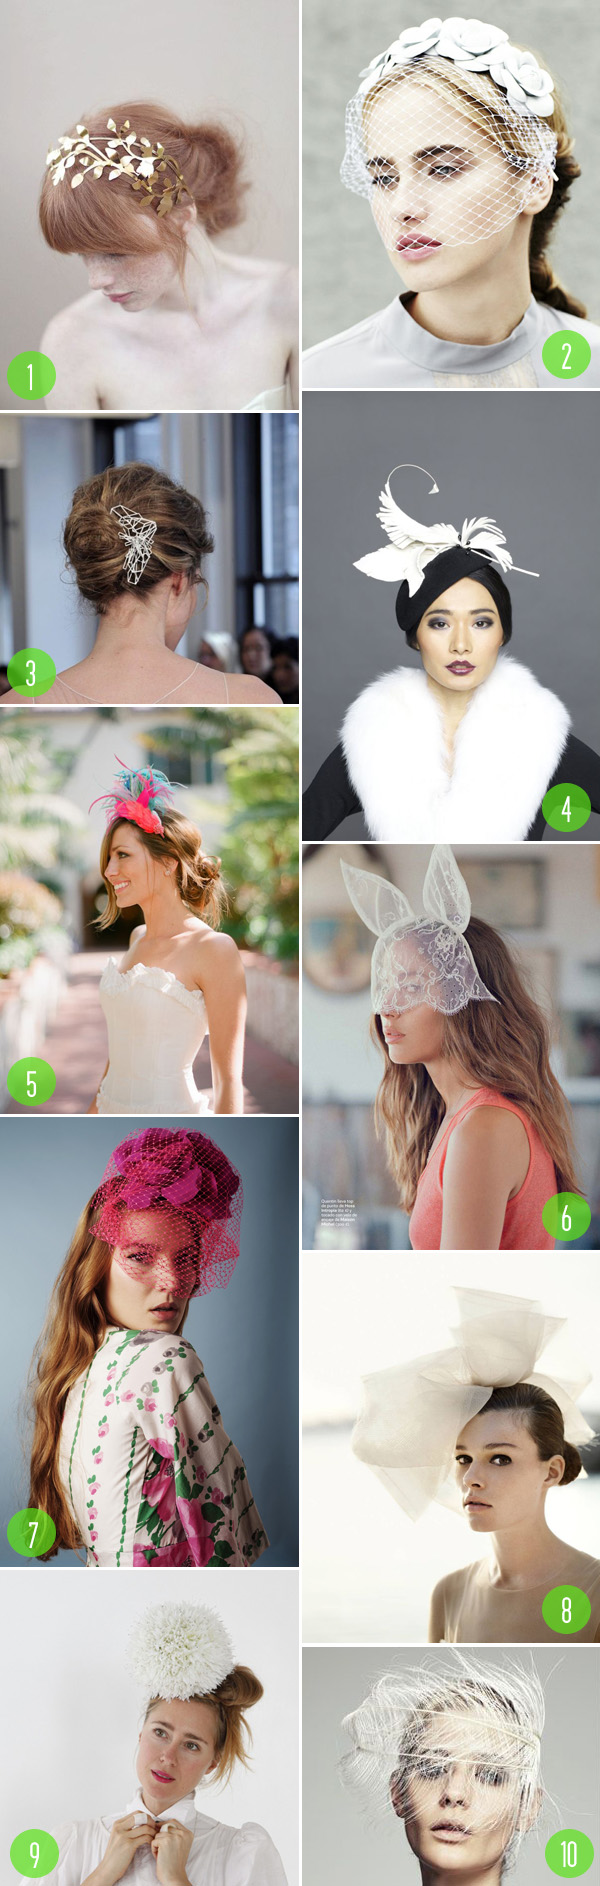 top 10: hairpieces